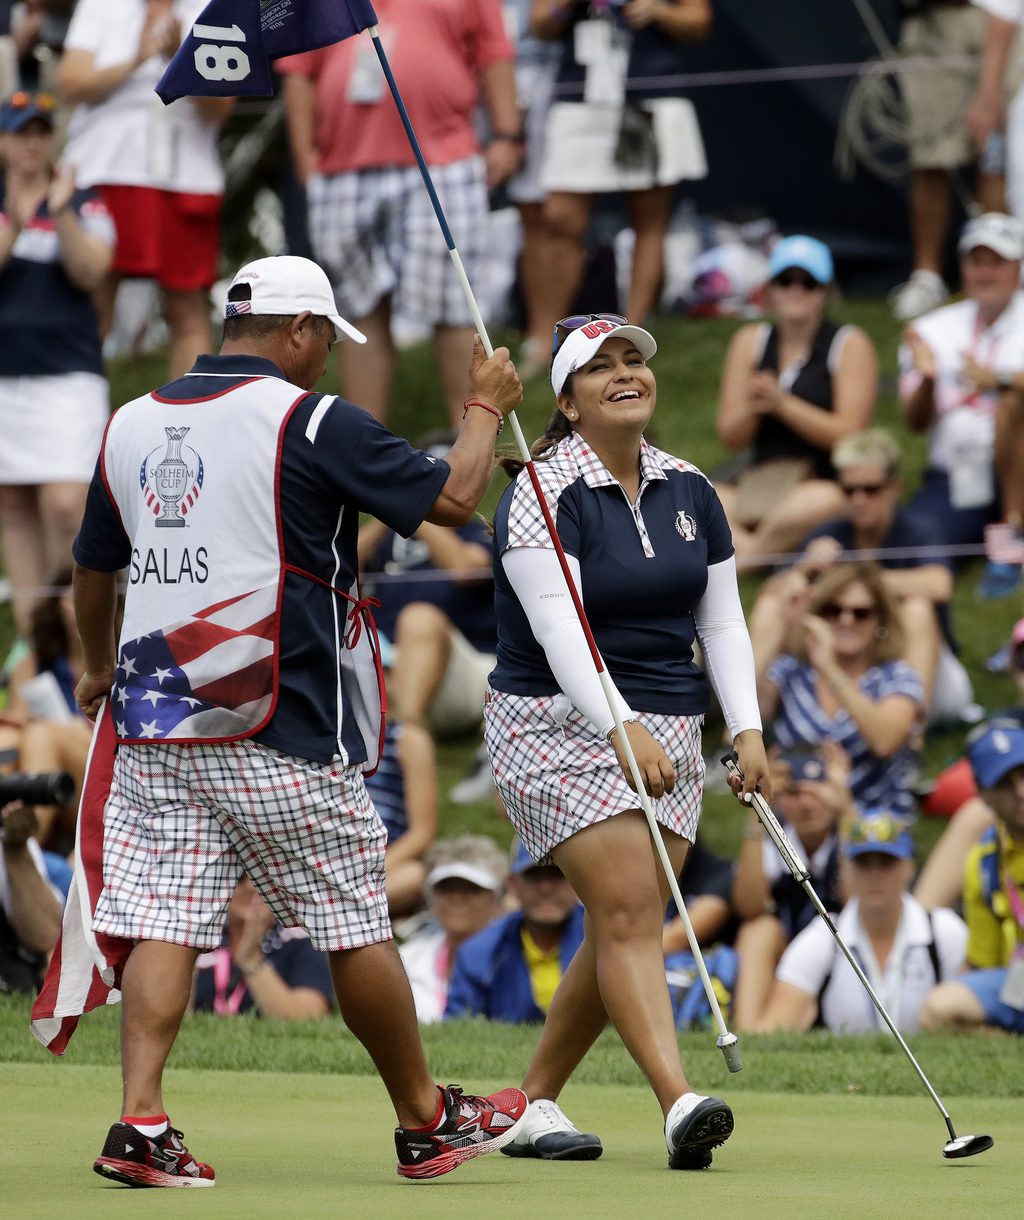 United States' Lizette Salas, left, celebrates after clinching the winning half point during her singles match against Europe's Jodi Ewart Shadoff, of...